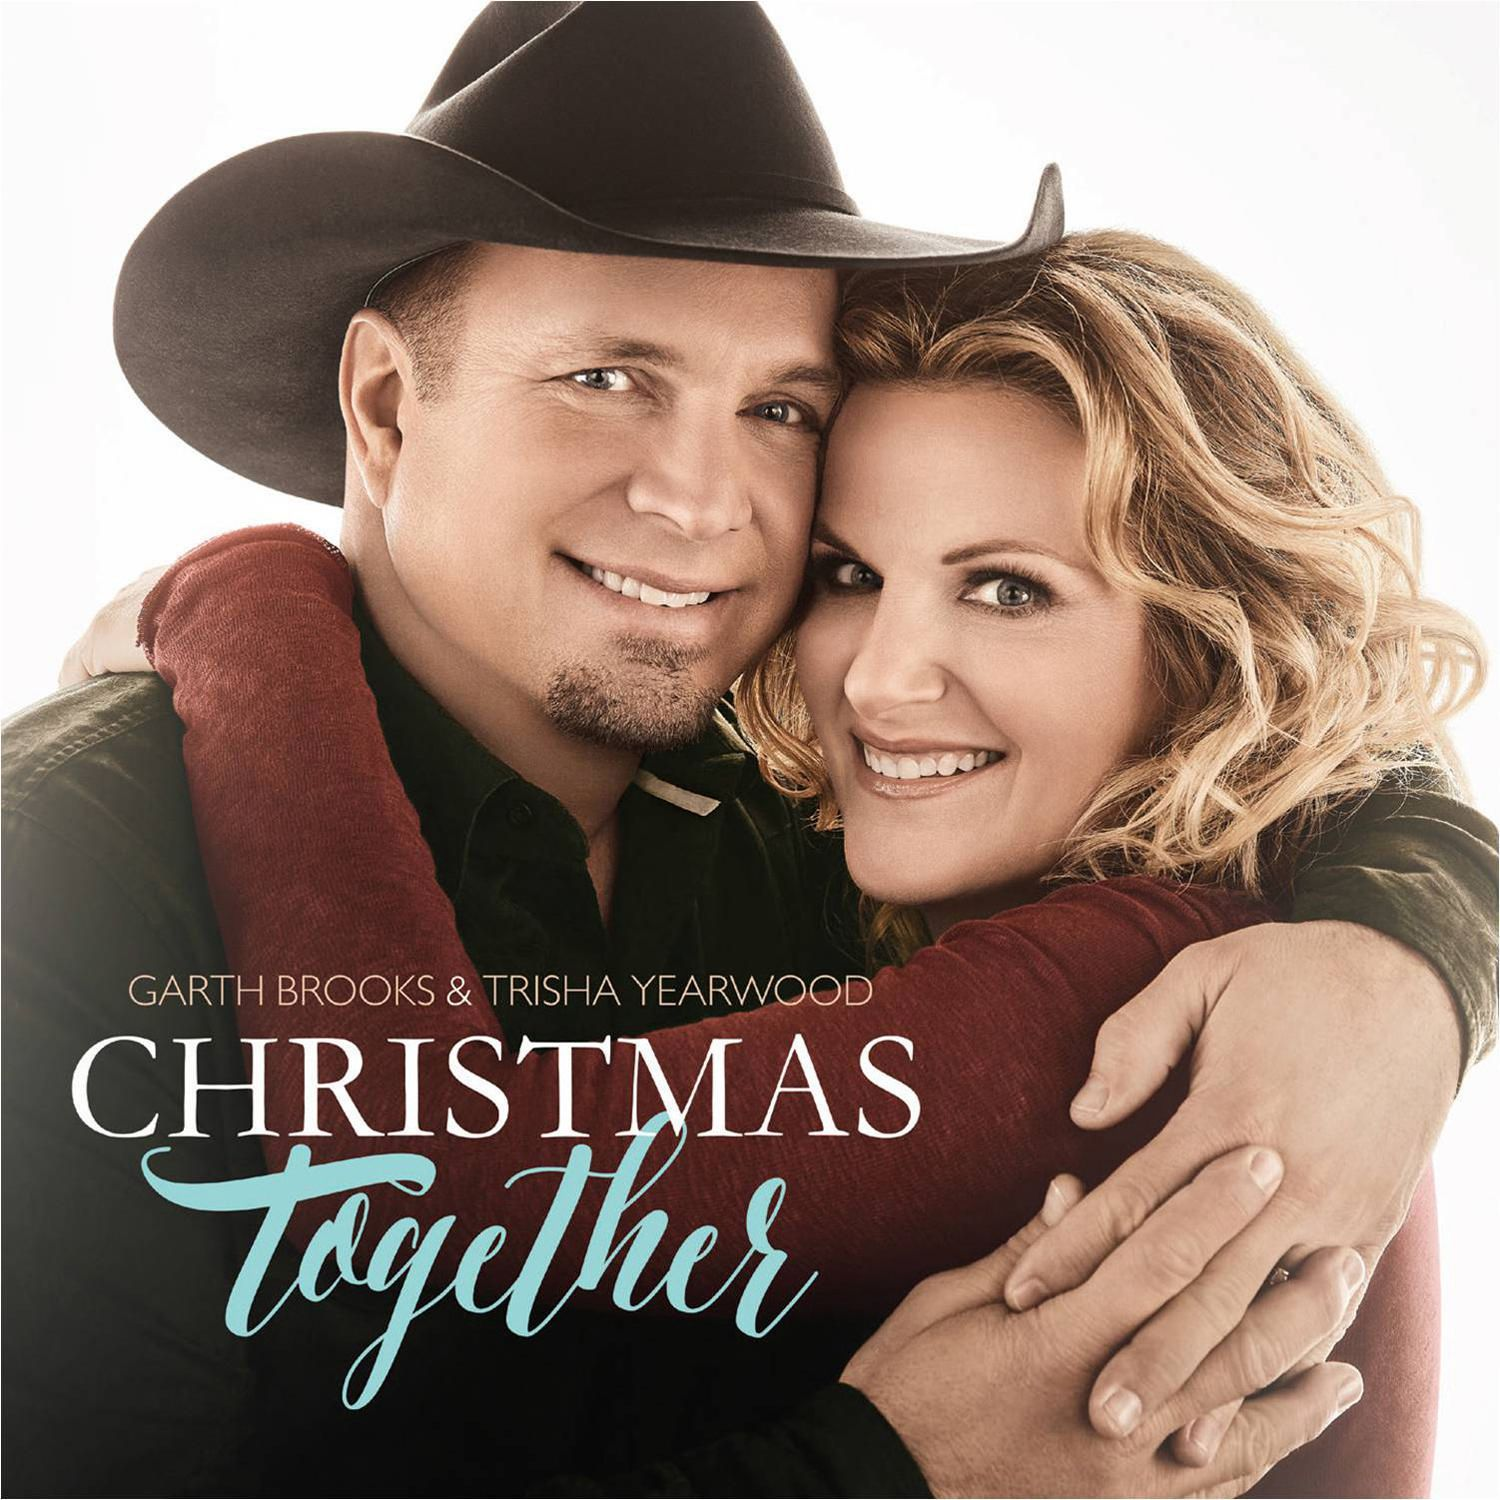 Garth Brooks & Trisha Yearwood - Christmas Together | Walmart Canada